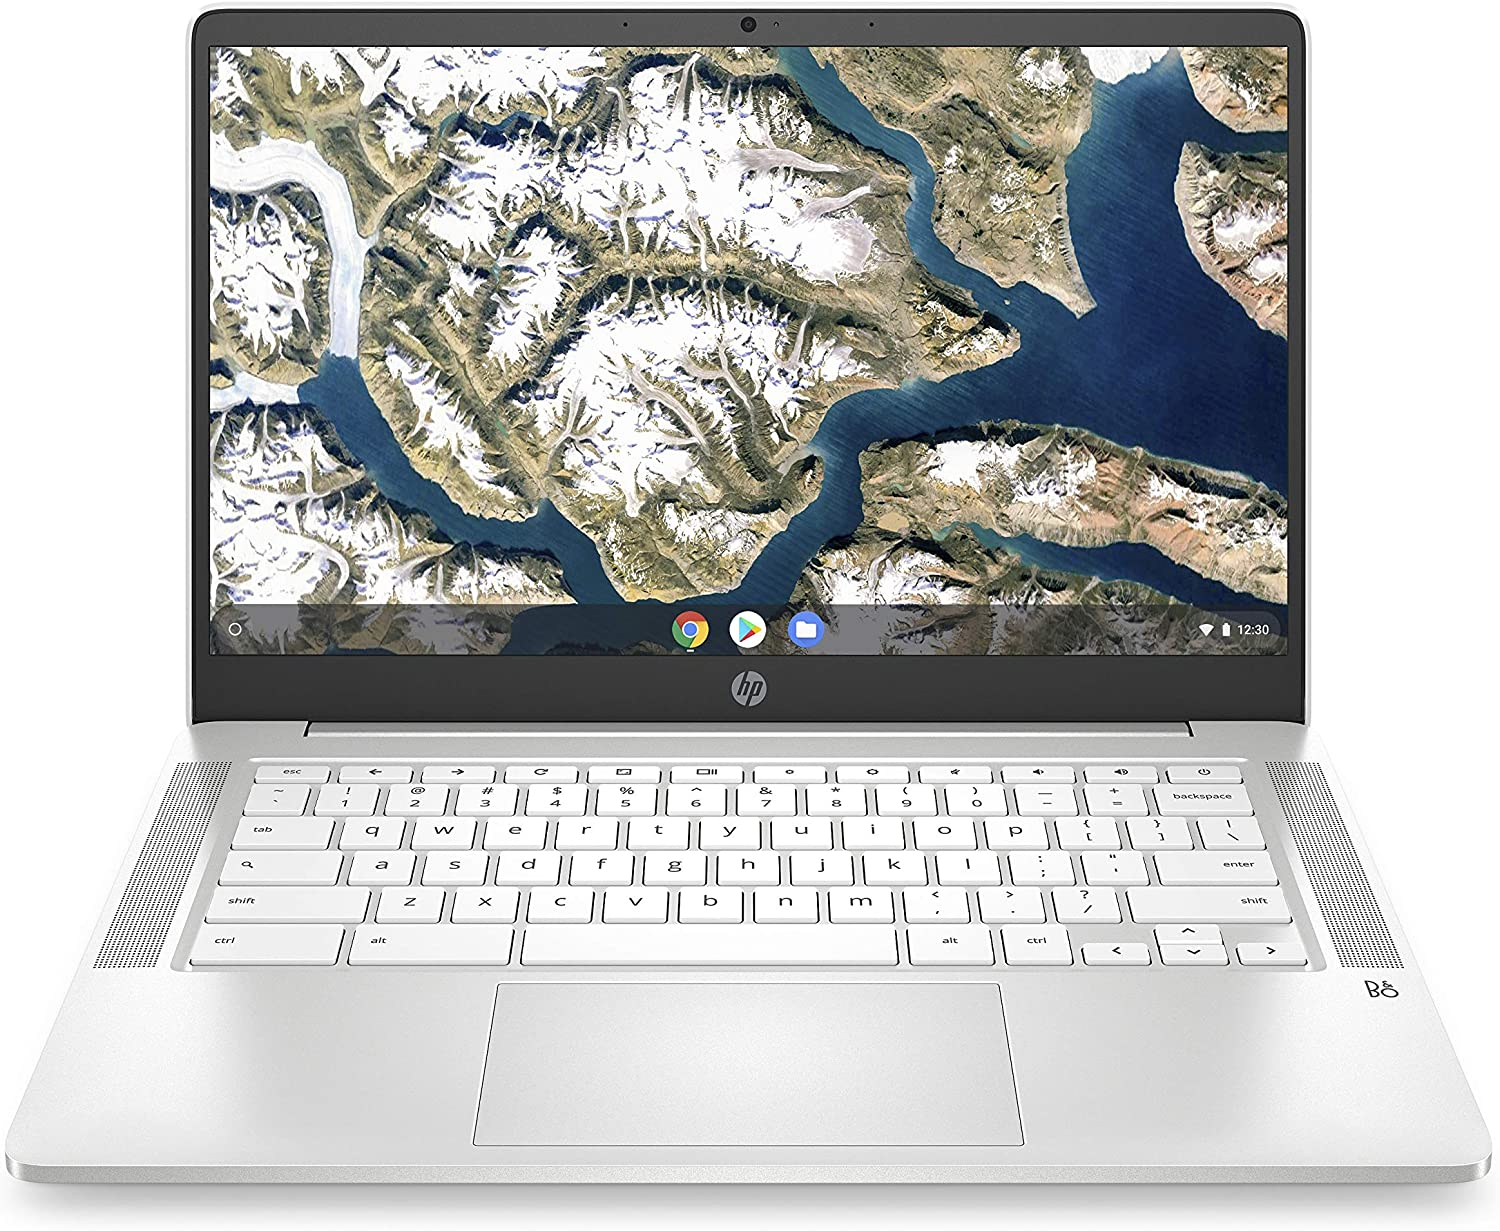 8 Best HP Laptops in 2021 [For Gaming, College, Business & Work]